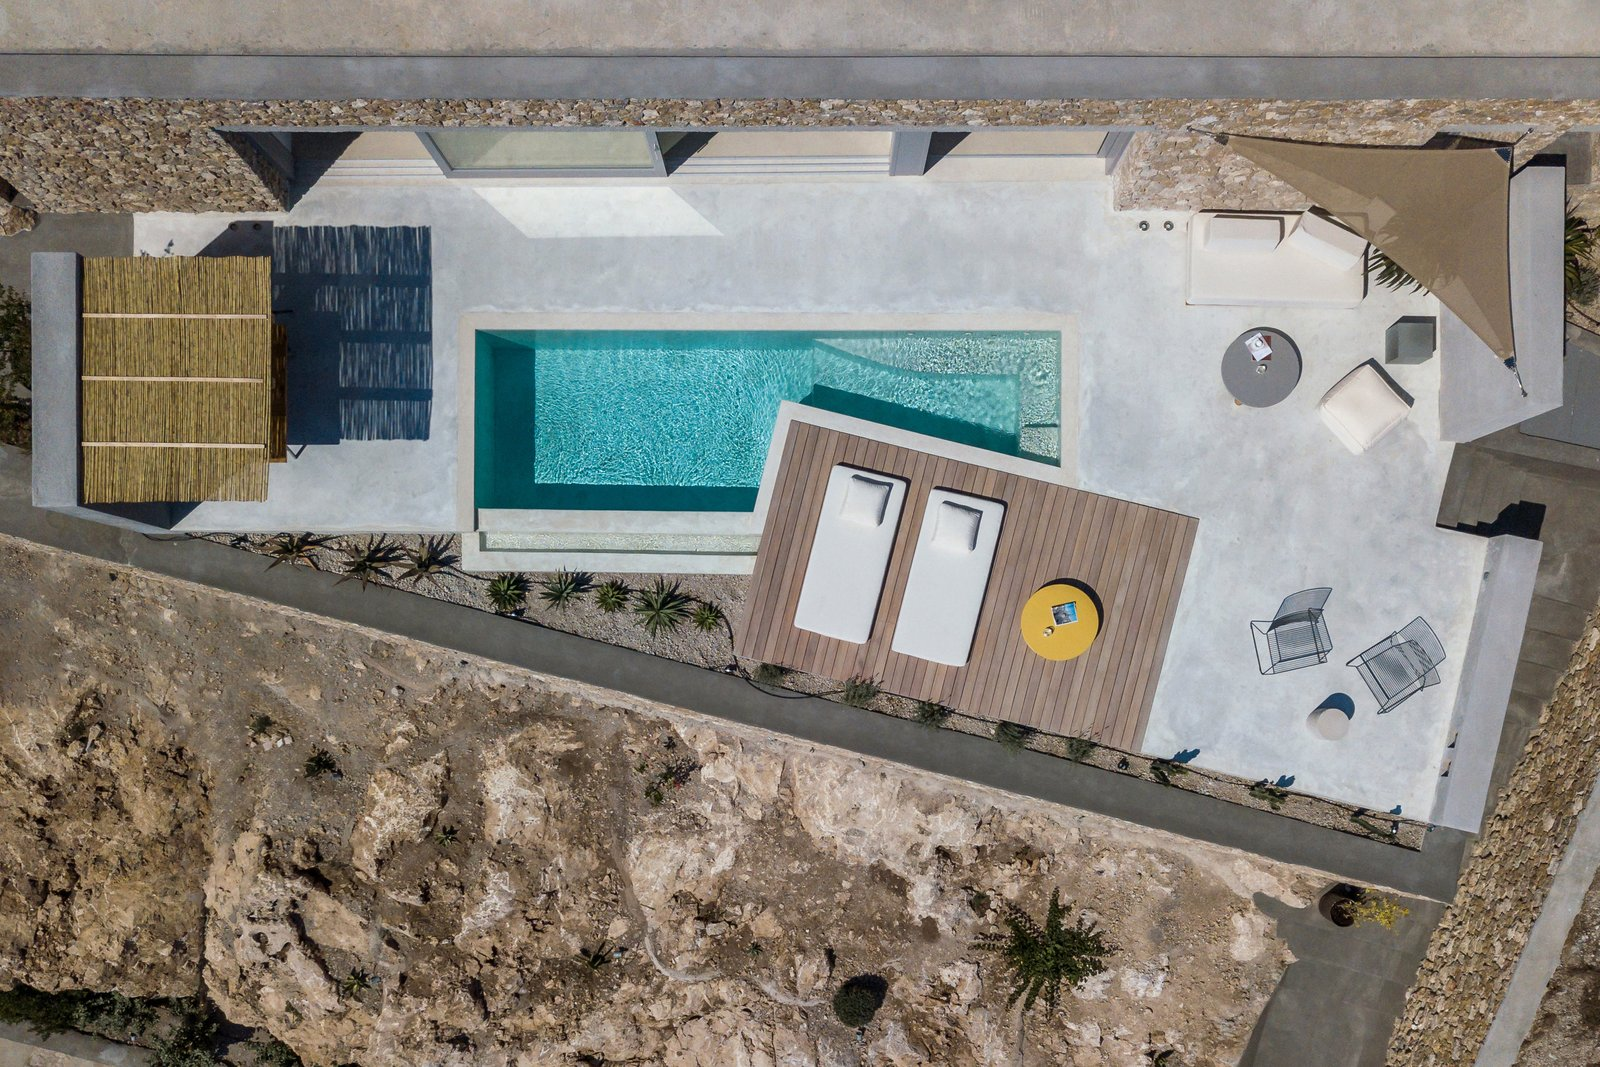 Outdoor, Small, Front Yard, Large, Wood, Concrete, Stone, Decking, Concrete, Concrete, Swimming, and Infinity The excavated material has been used to shape the property's exterior features.  Best Outdoor Concrete Infinity Photos from A Modern Home Is Gently Slotted Into a Steep Slope in Santorini